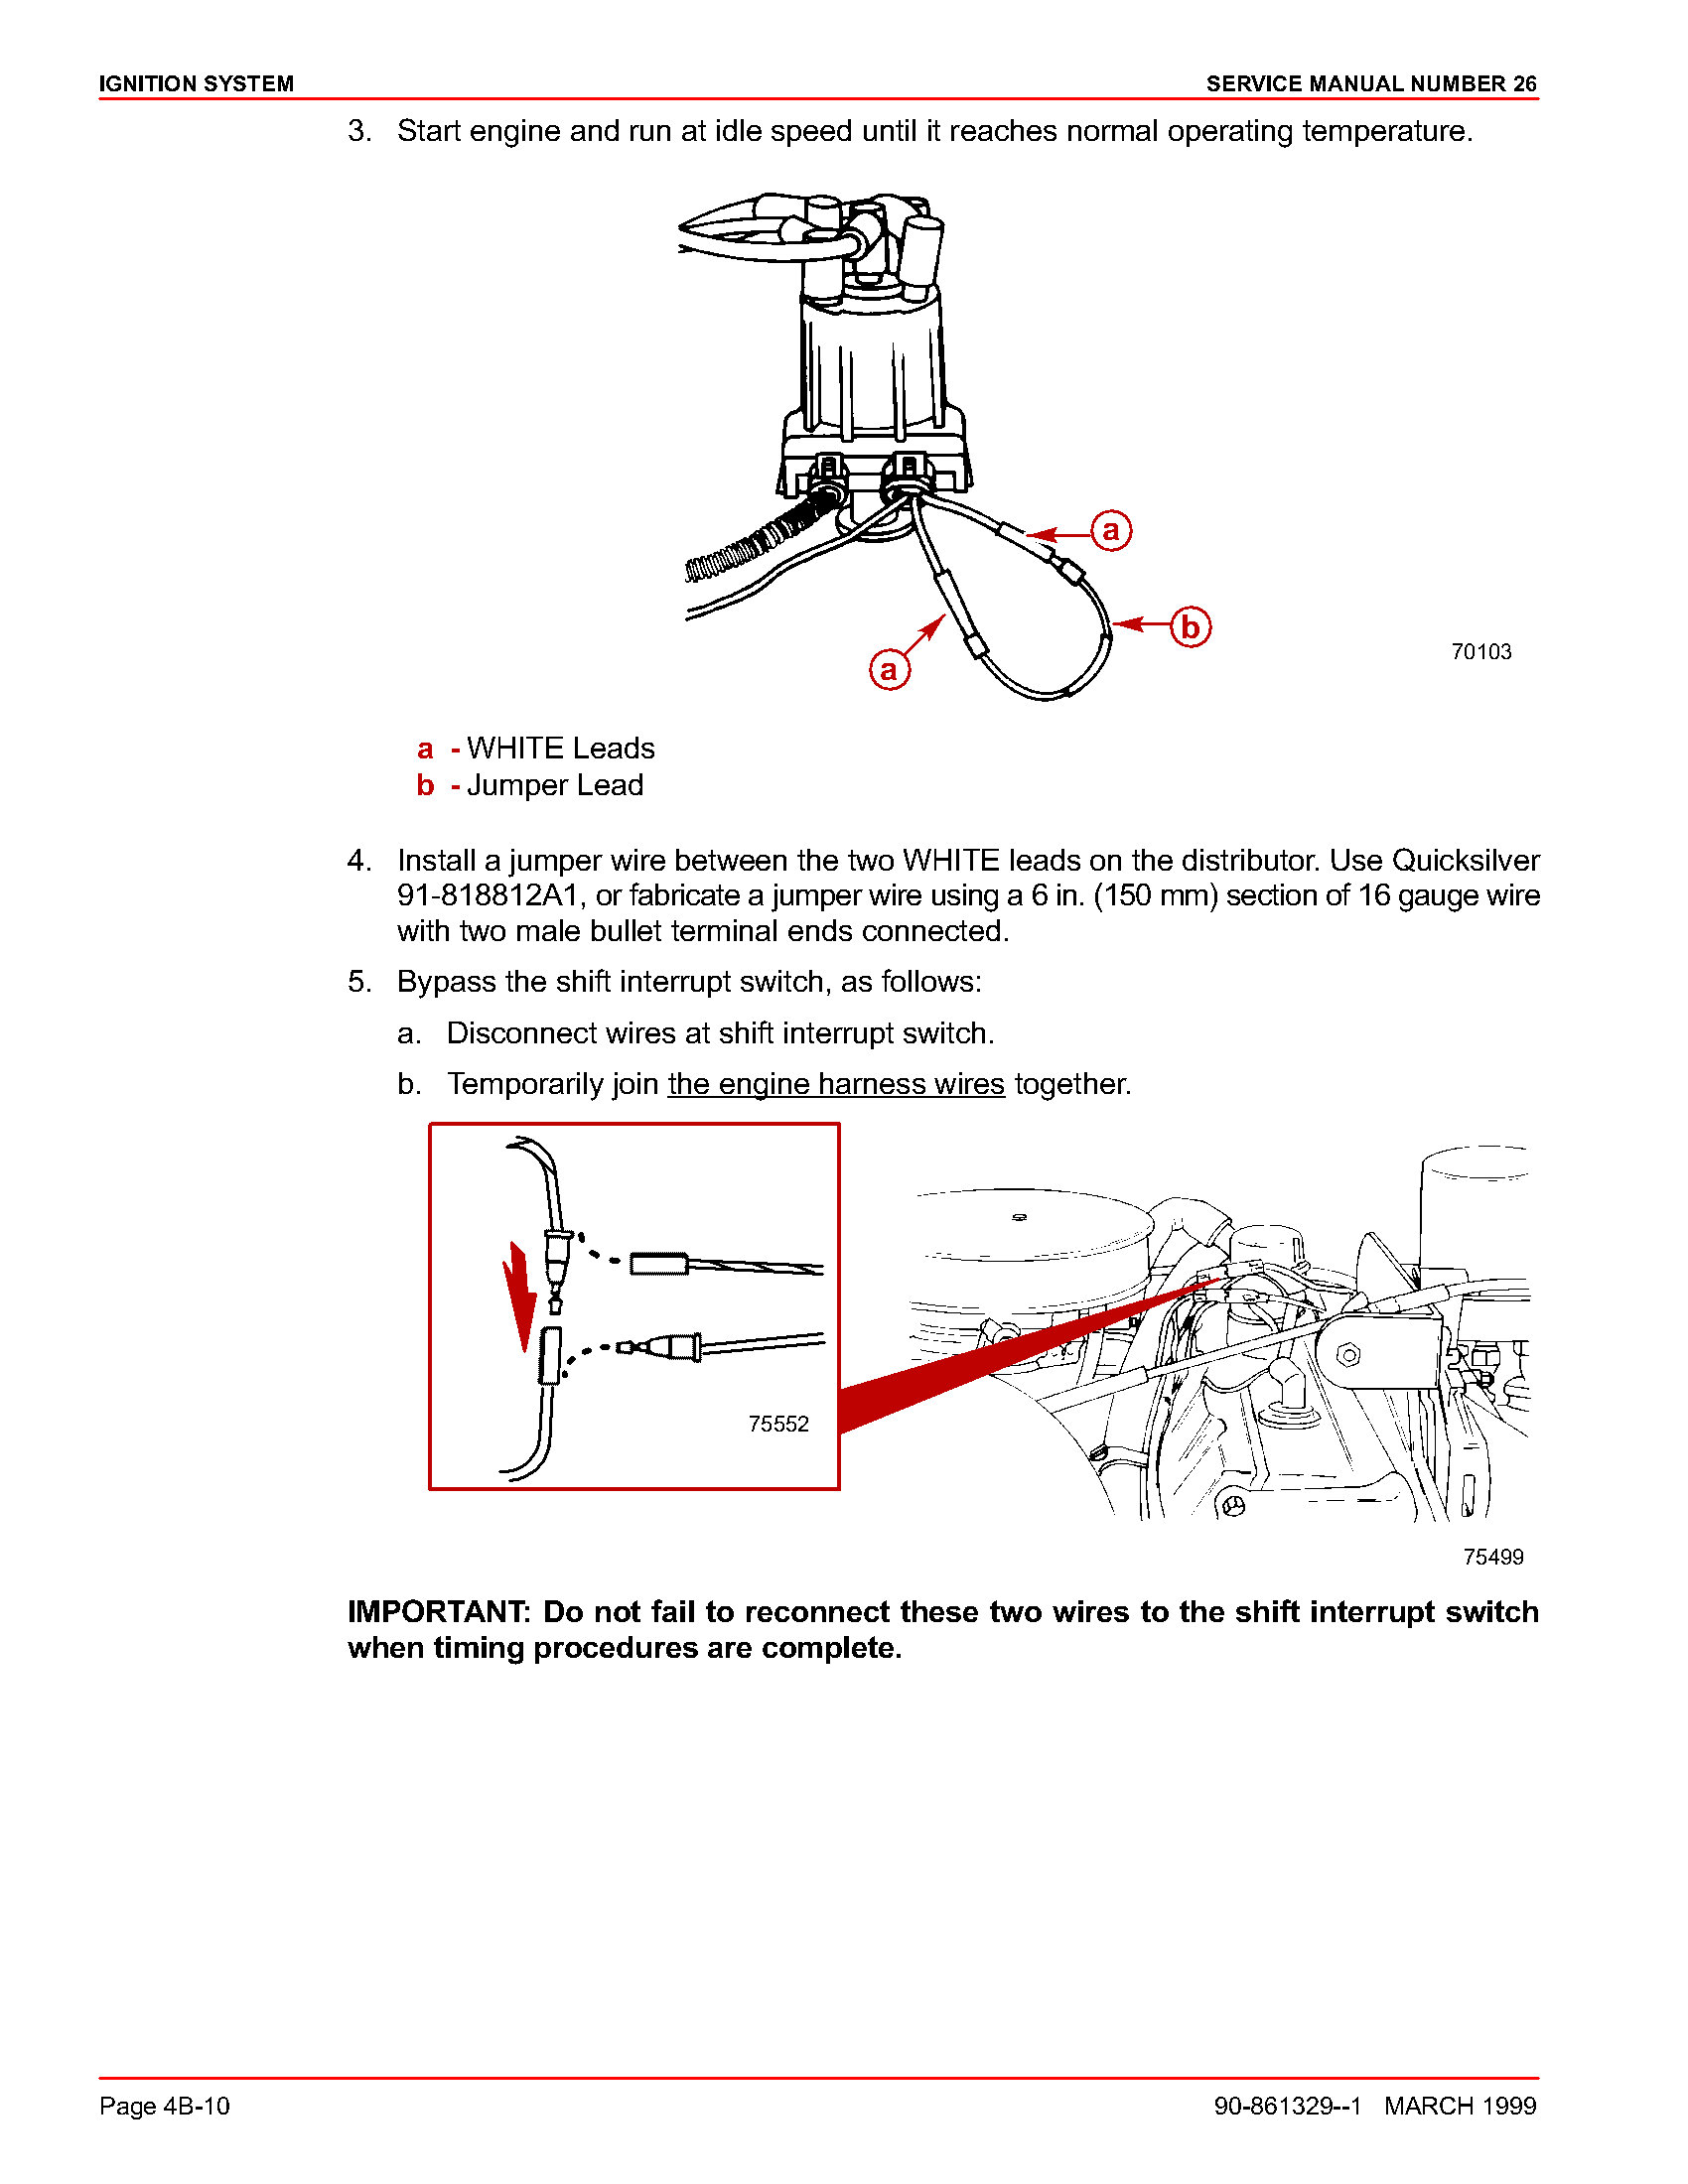 ignition timing advance of the petrol engine engineering essay A petrol engine is an internal combustion engine with spark-ignition, designed to  run on petrol (gasoline) and similar volatile fuels.